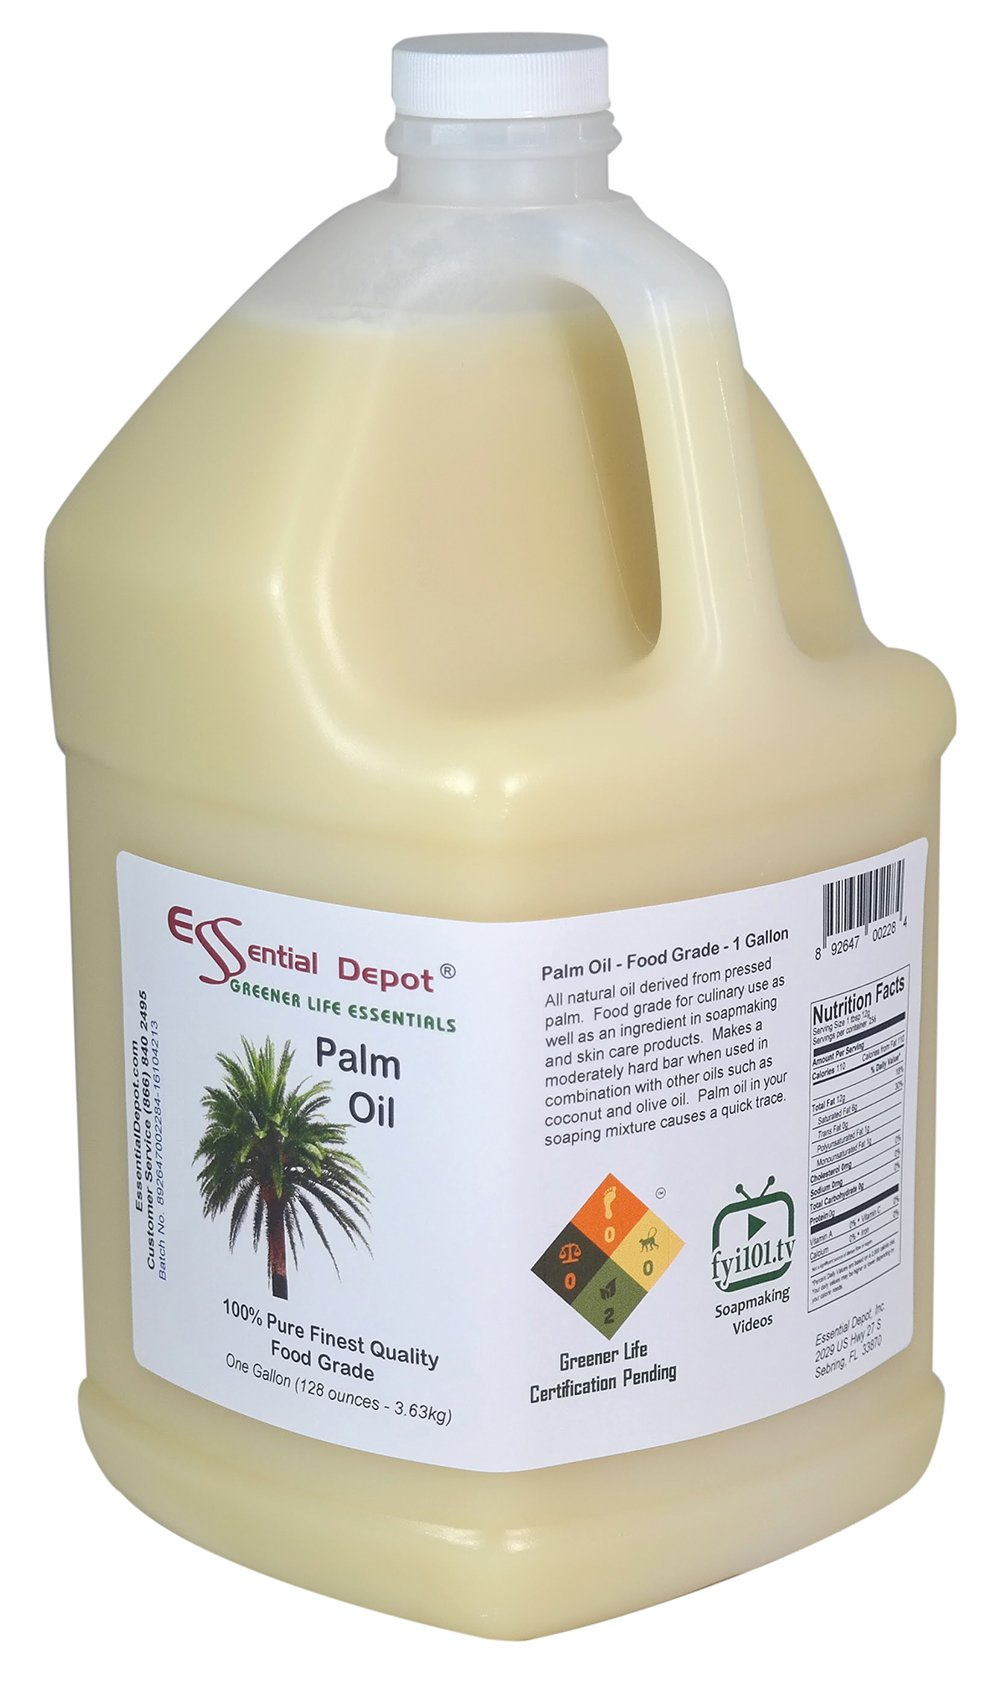 Palm Oil - RSPO Certified - Sustainable - Food Safe - 1 Gallon